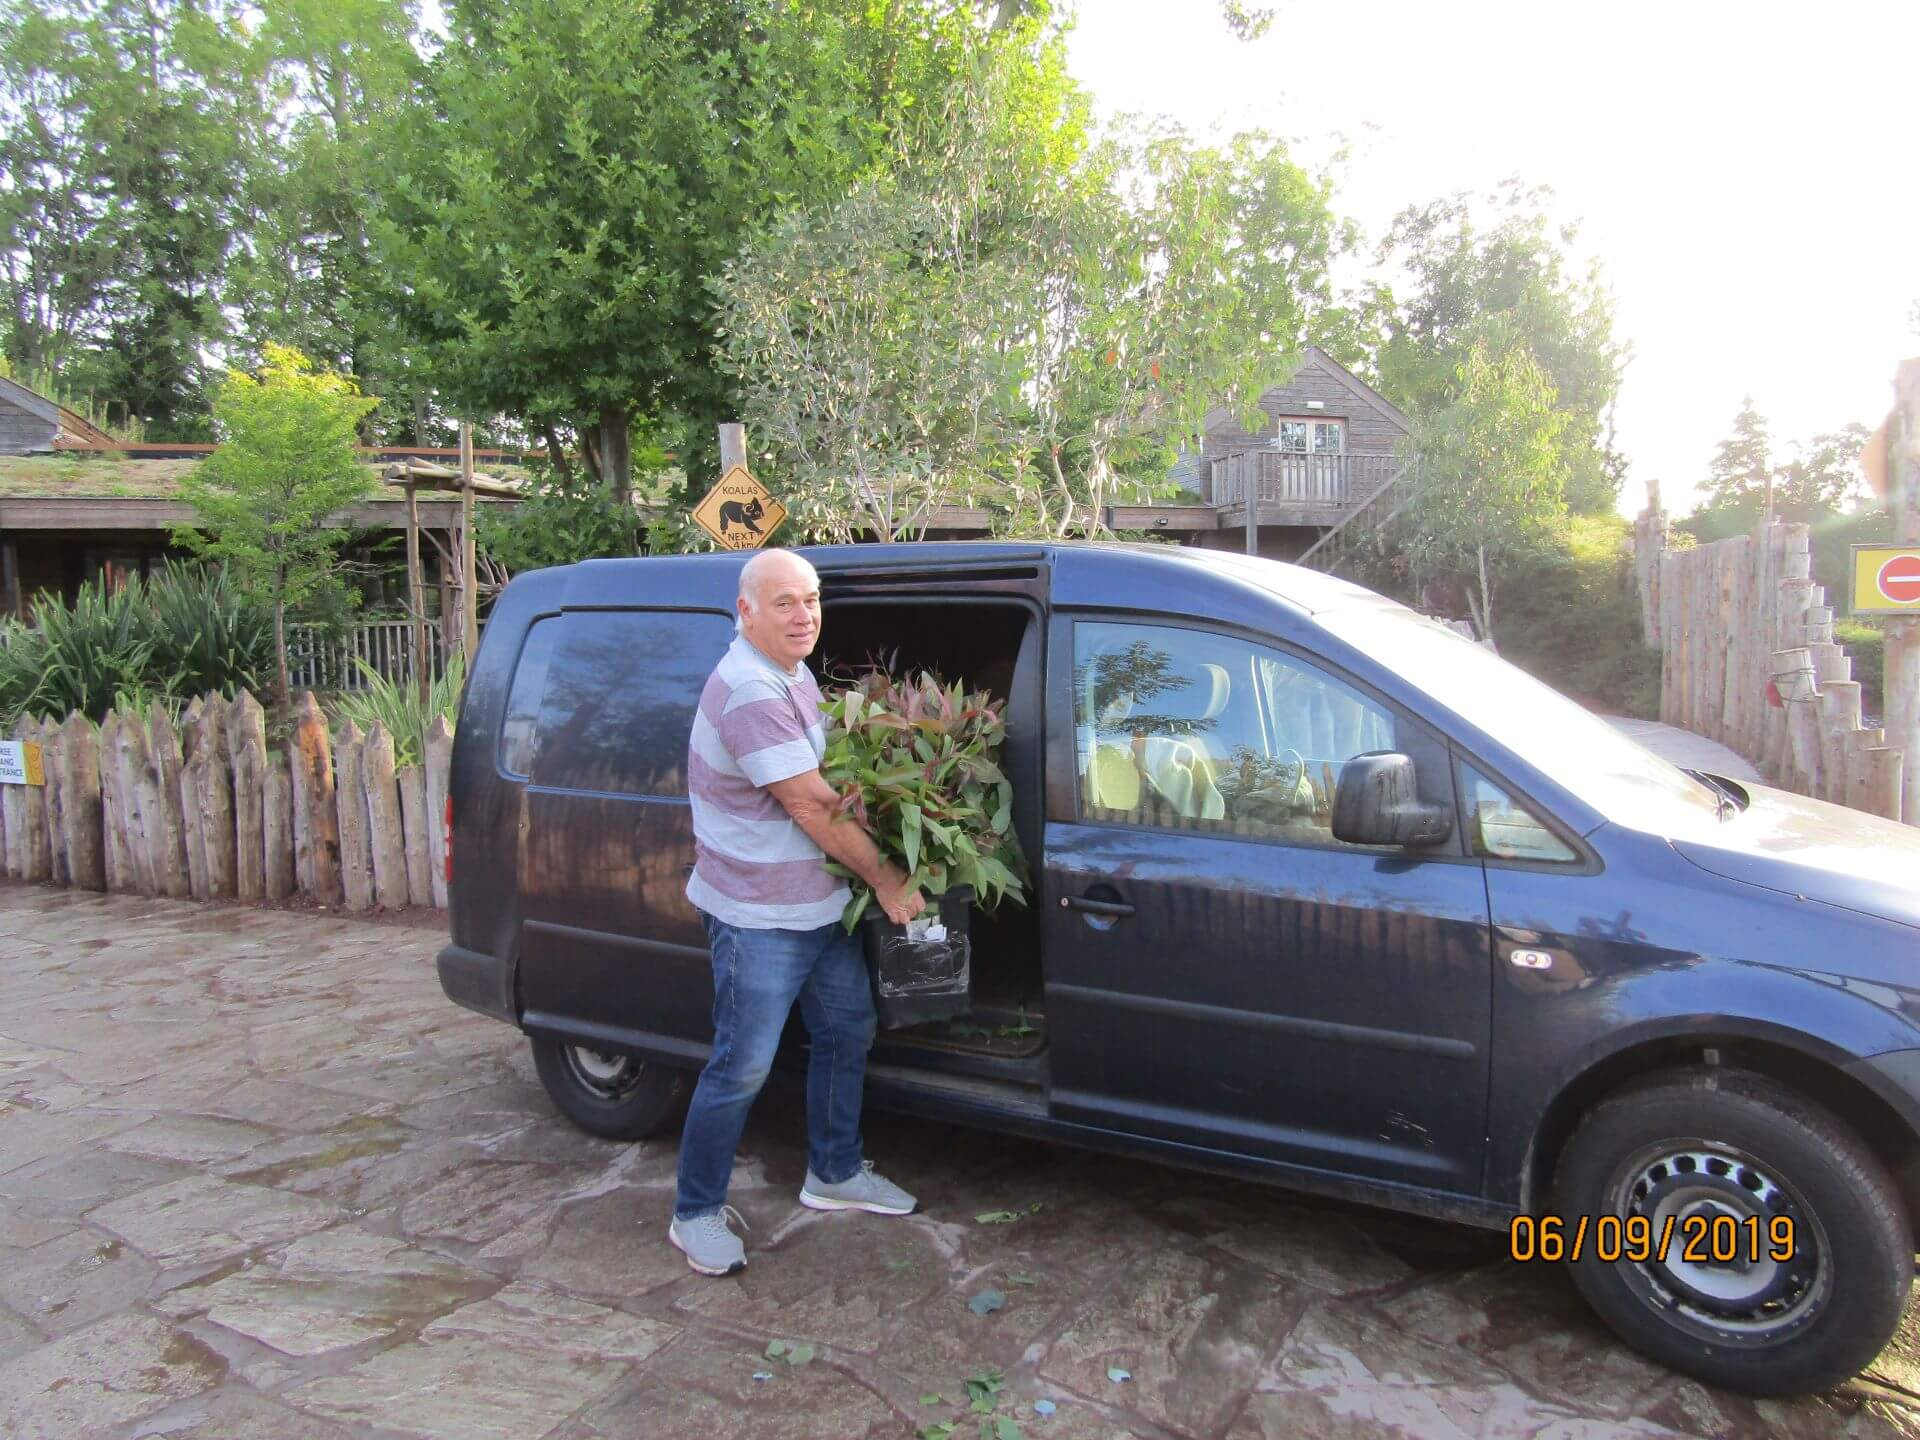 Edward-making-a-delivery-Belgium